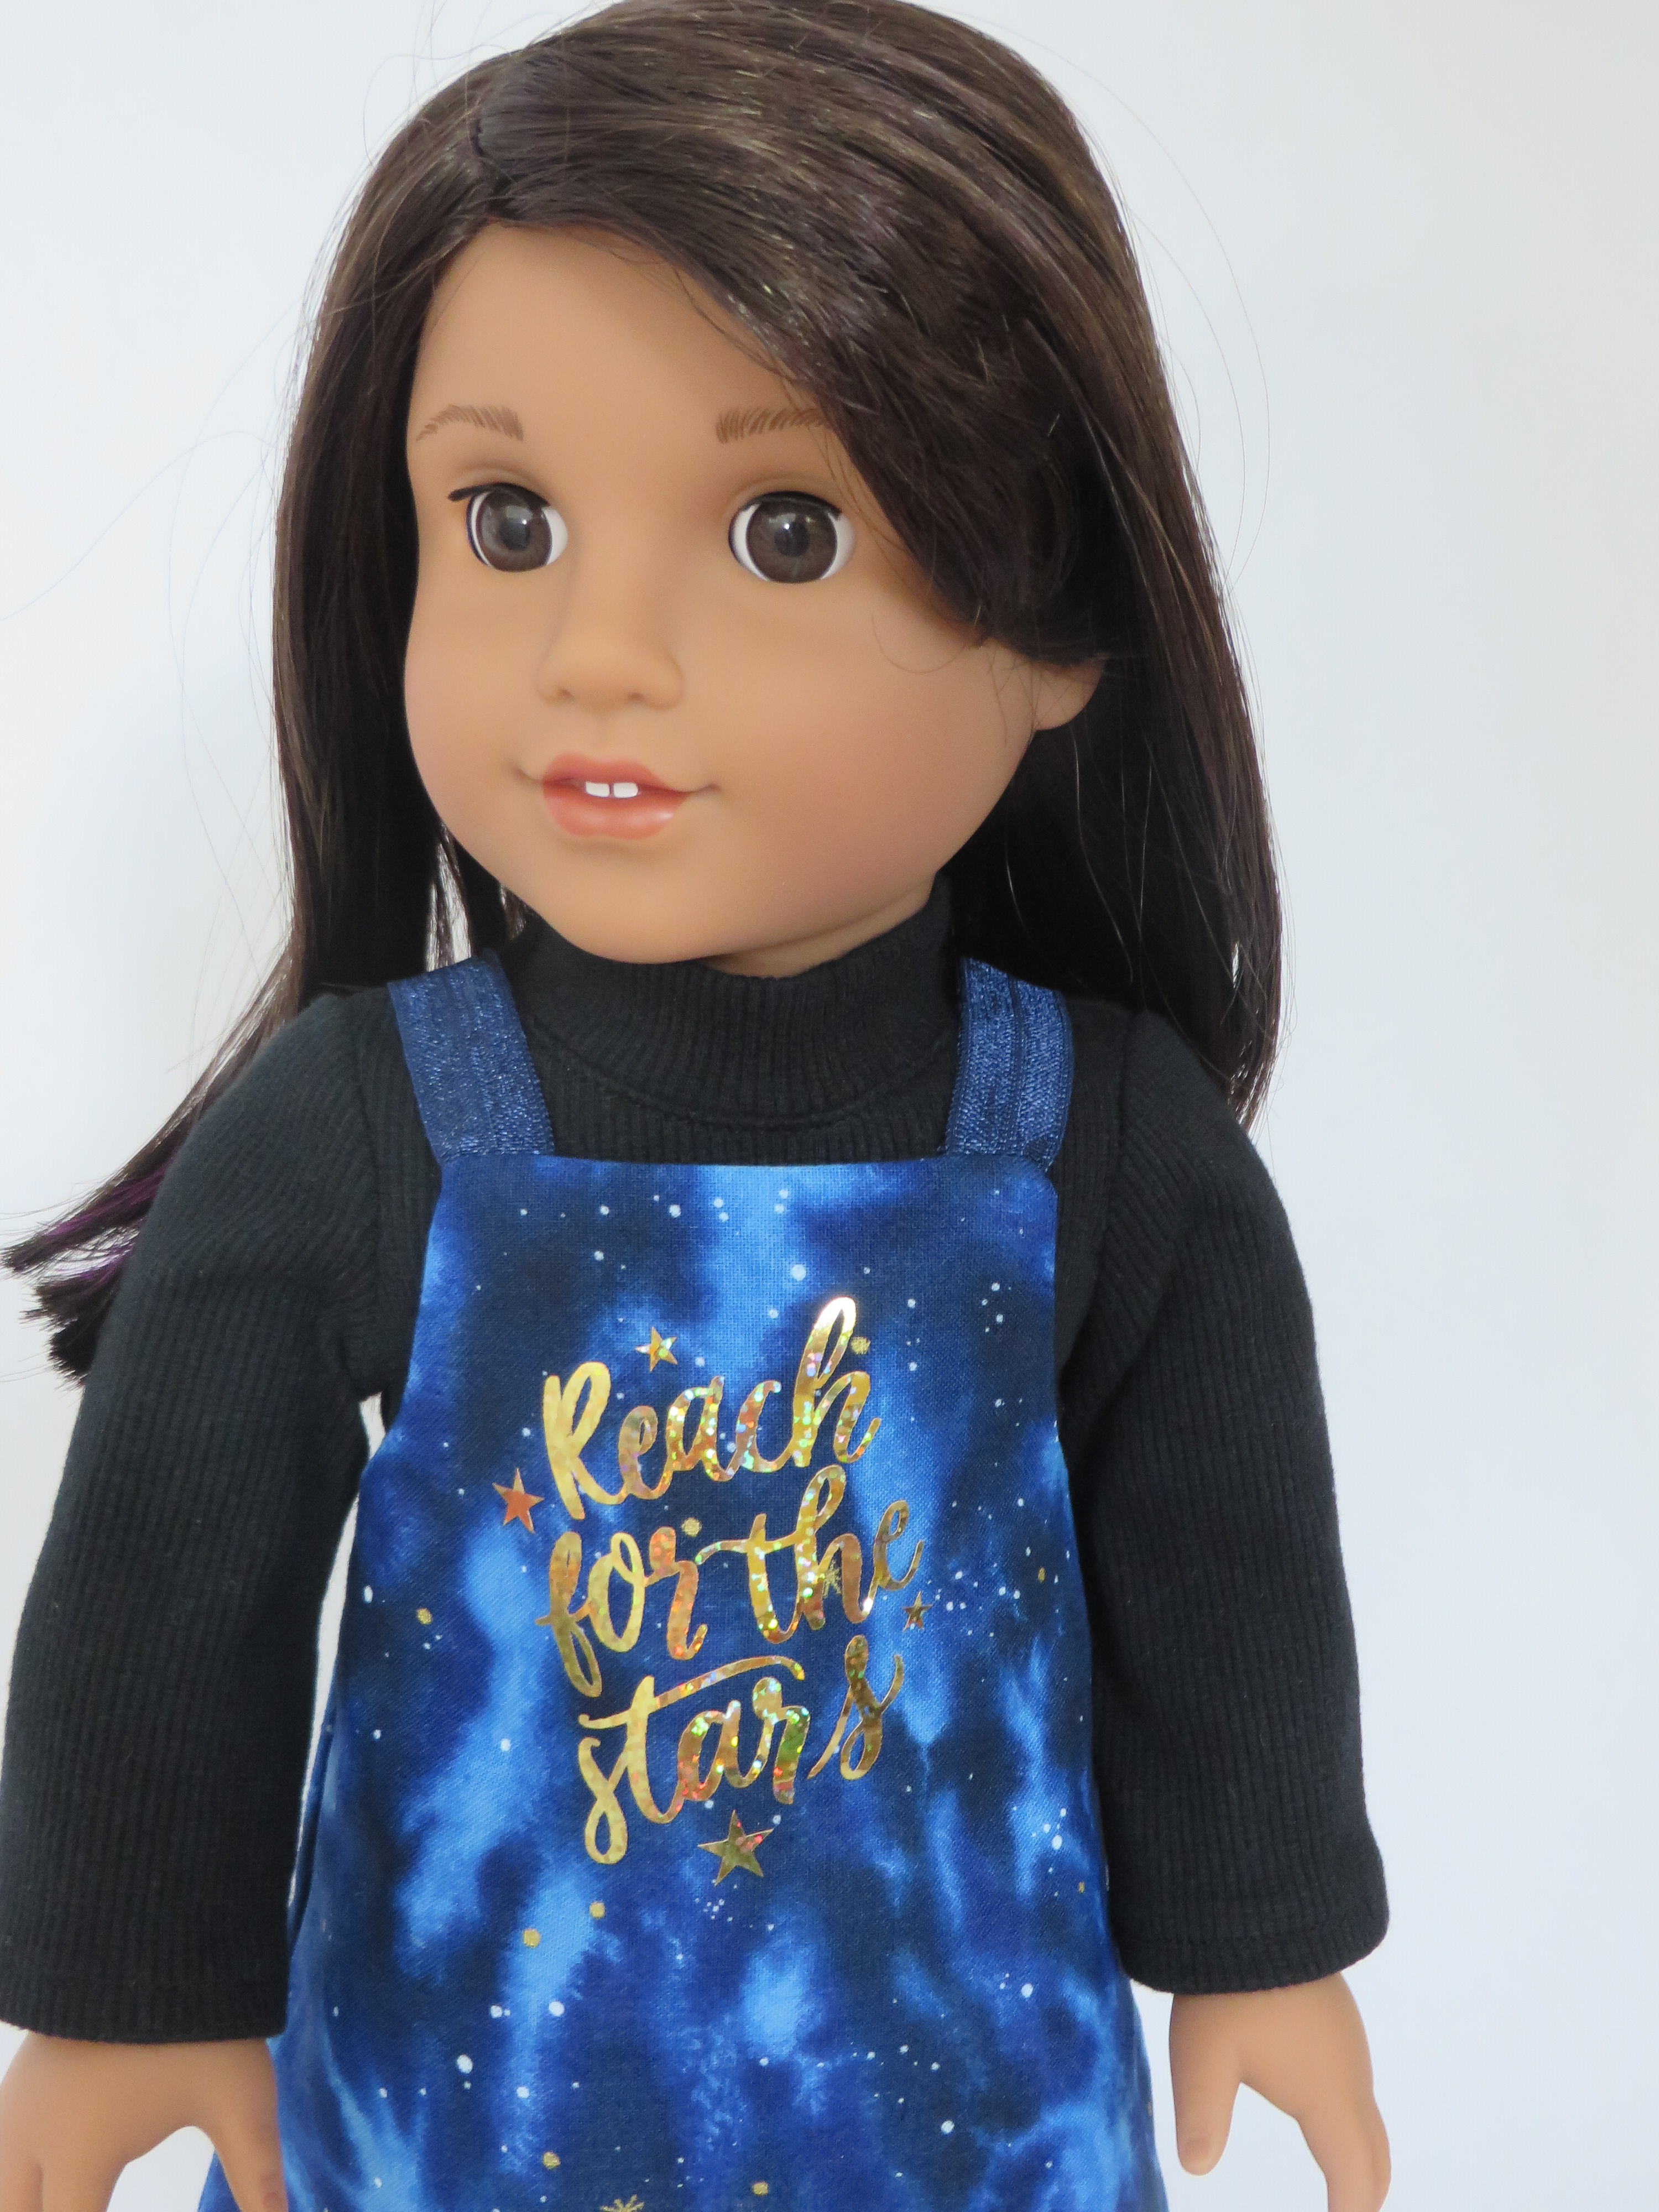 Easy sewing patterns to make doll clothes by OhSewKat. Digital downloads to print and sew. Make an easy jumper for American Girl Dolls. #ohsewkat #dollclothes #sewingpattern #diy #dolljumper #lucianavega